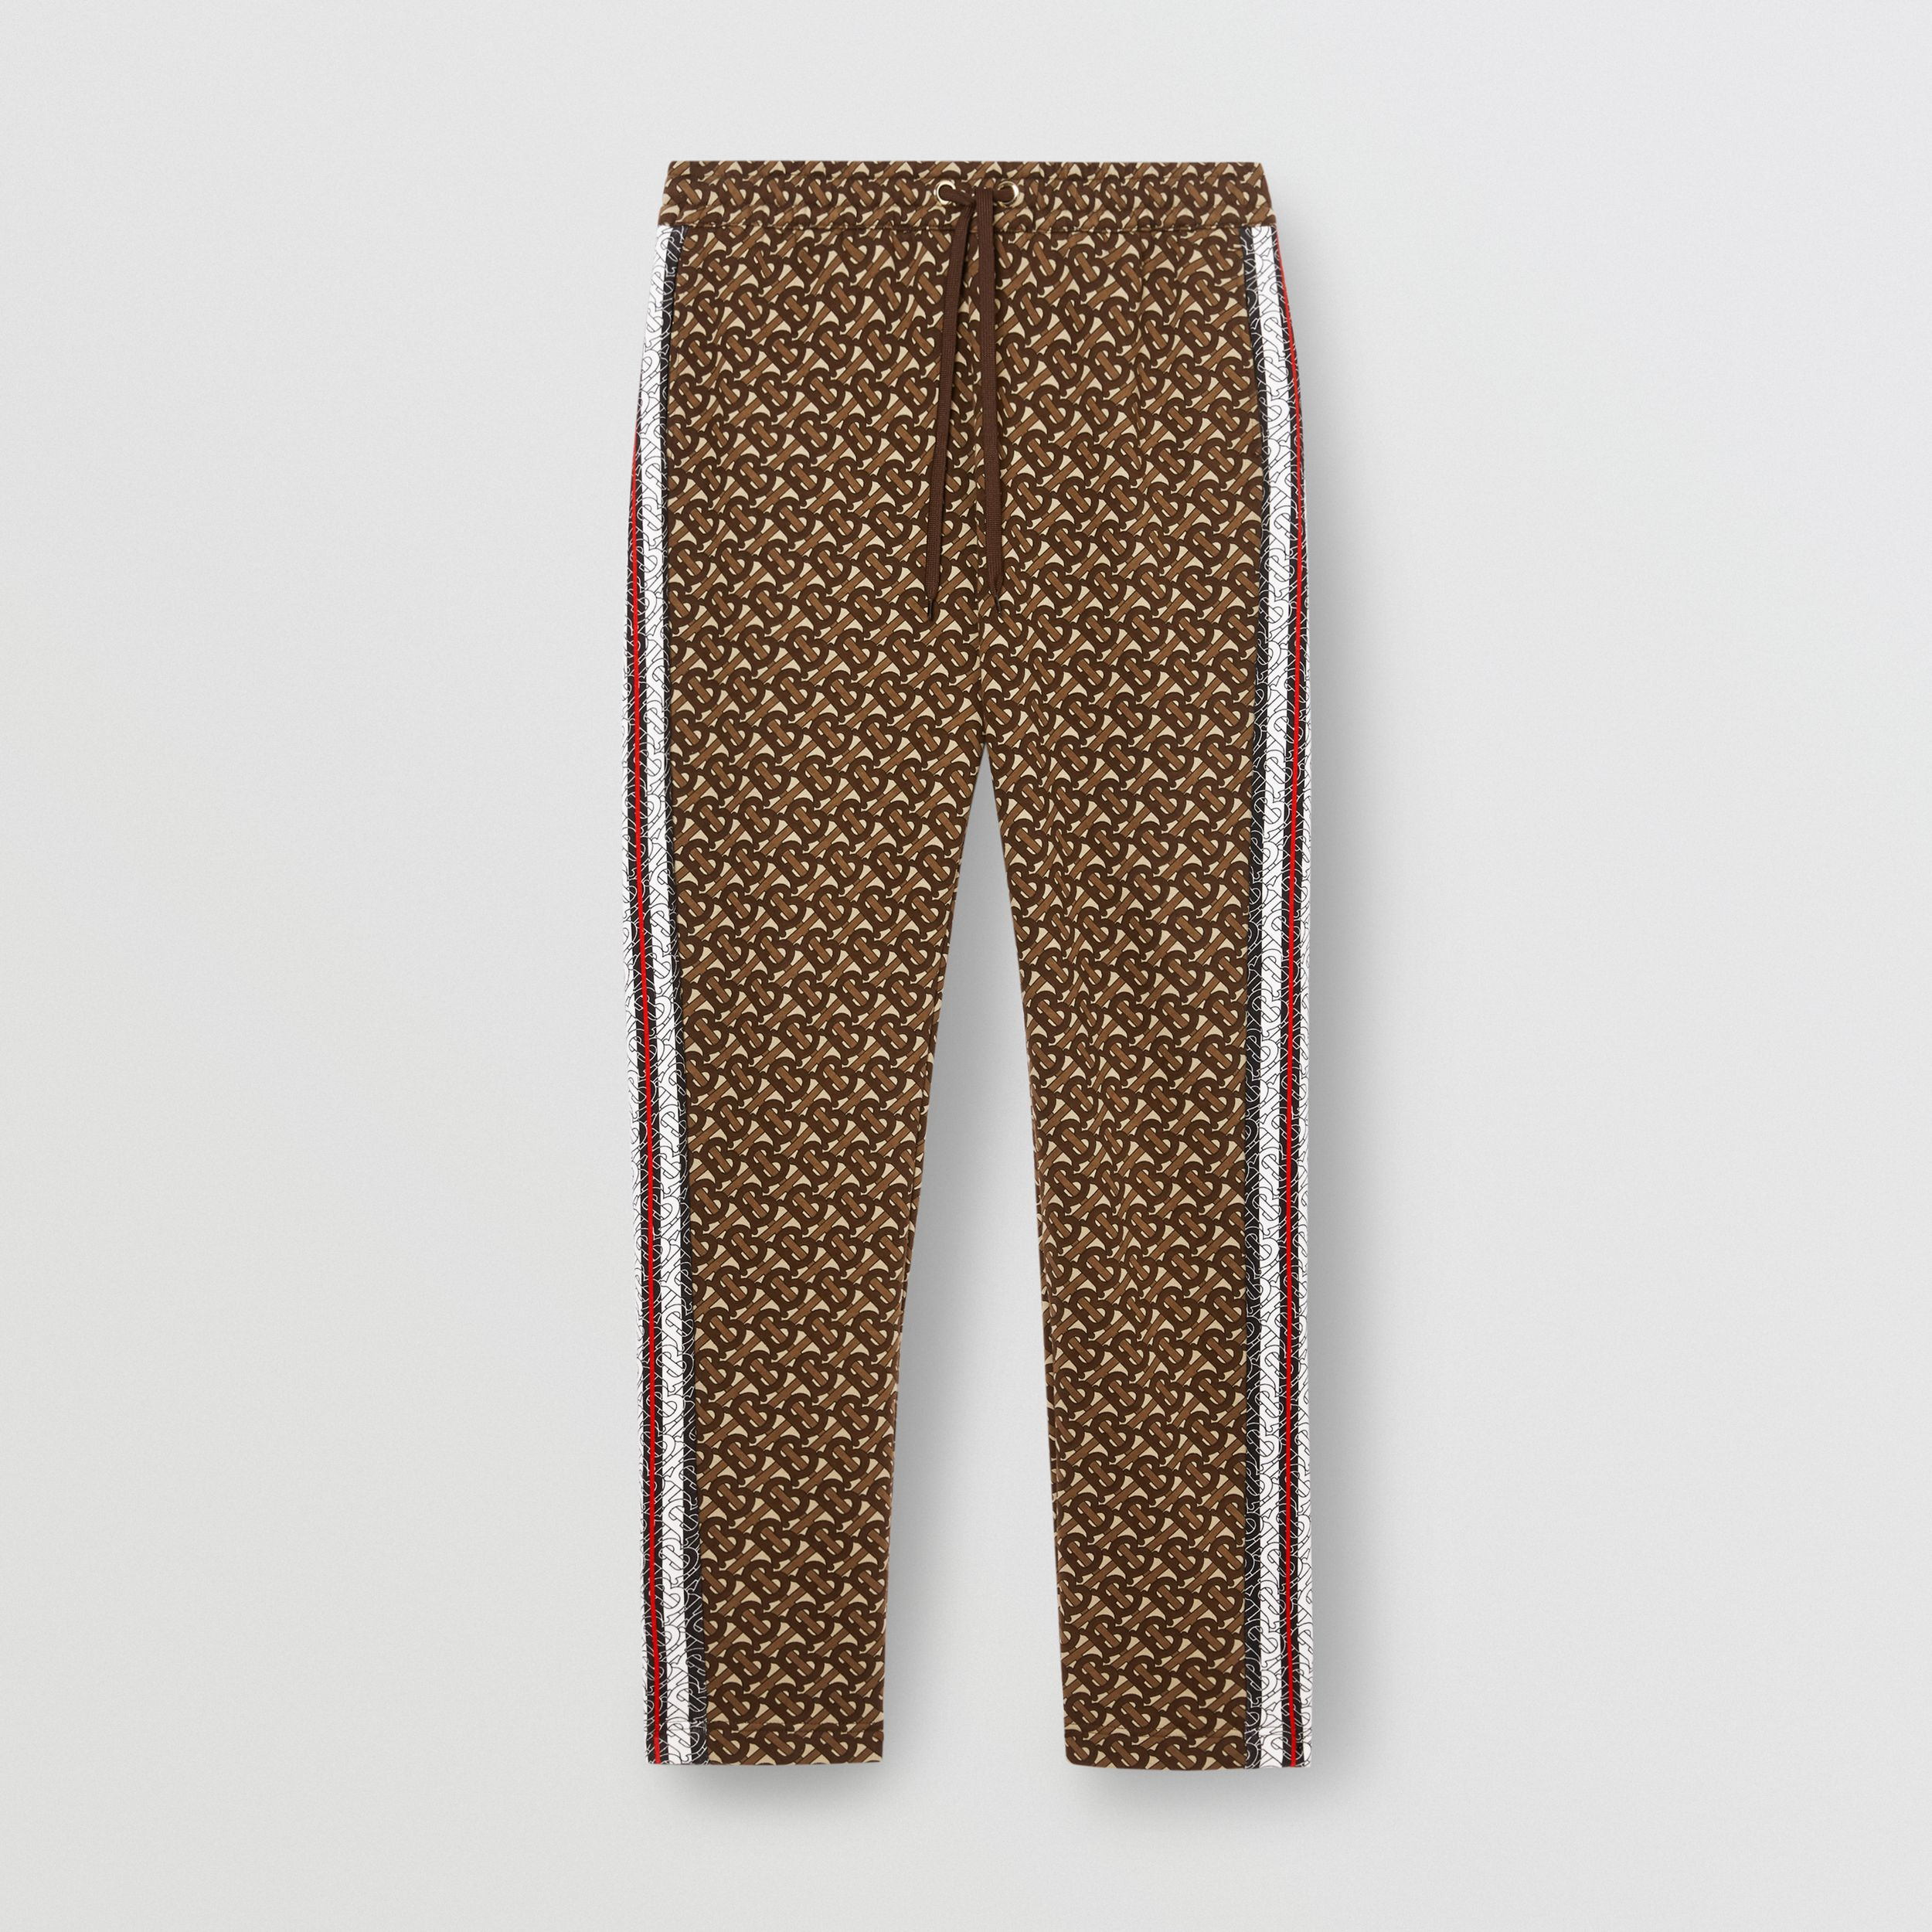 Monogram Stripe Print Cotton Trackpants in Bridle Brown - Men | Burberry - 4